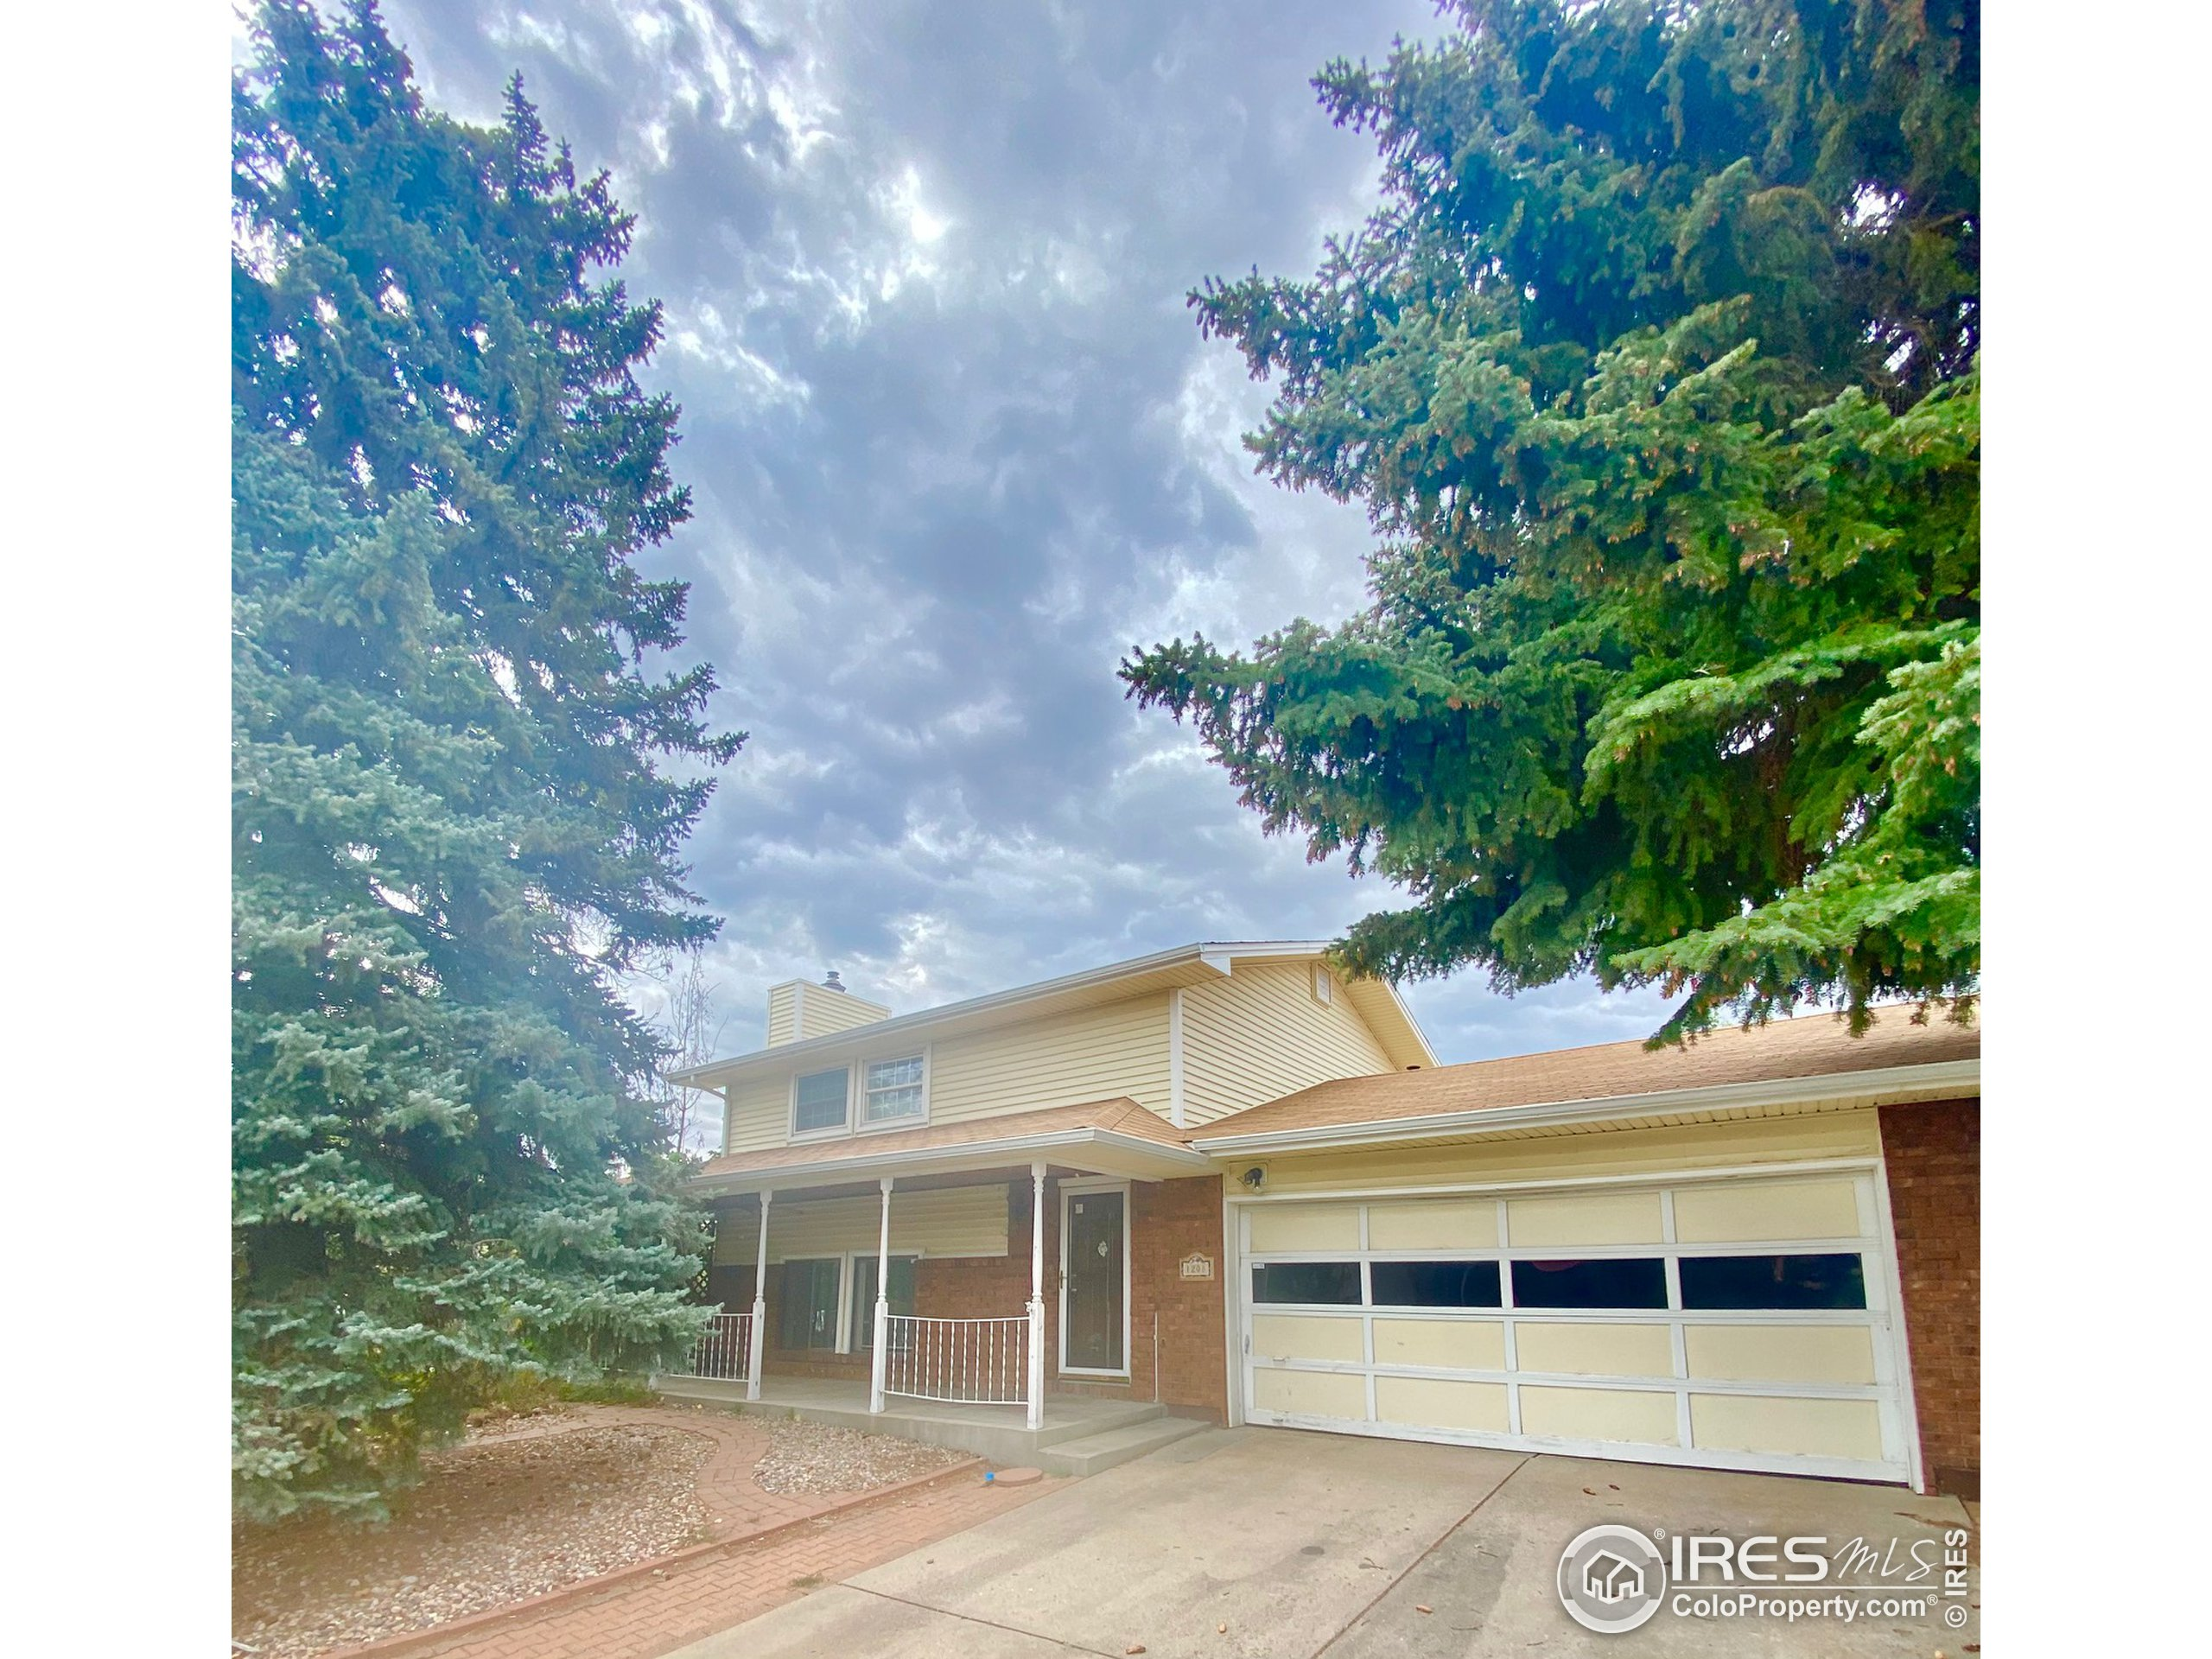 In a great location in the Sherri Mar subdivision just South of Taft and 1st Street this spacious 3 bed/2 bath Bi-Level home is a must see! The kitchen offers granite countertops and custom cabinetry work with stained glass doors, a closed in patio room perfect for early morning coffee, 2 gas fireplaces that heat the home, a large backyard with stonework, an attached 2 car garage, a storage shed in the backyard, an extra building that is used as a sunroom, and a large pergola covering the back patio! *OFFERS DUE WEDNESDAY, 9/15 AT 11AM*